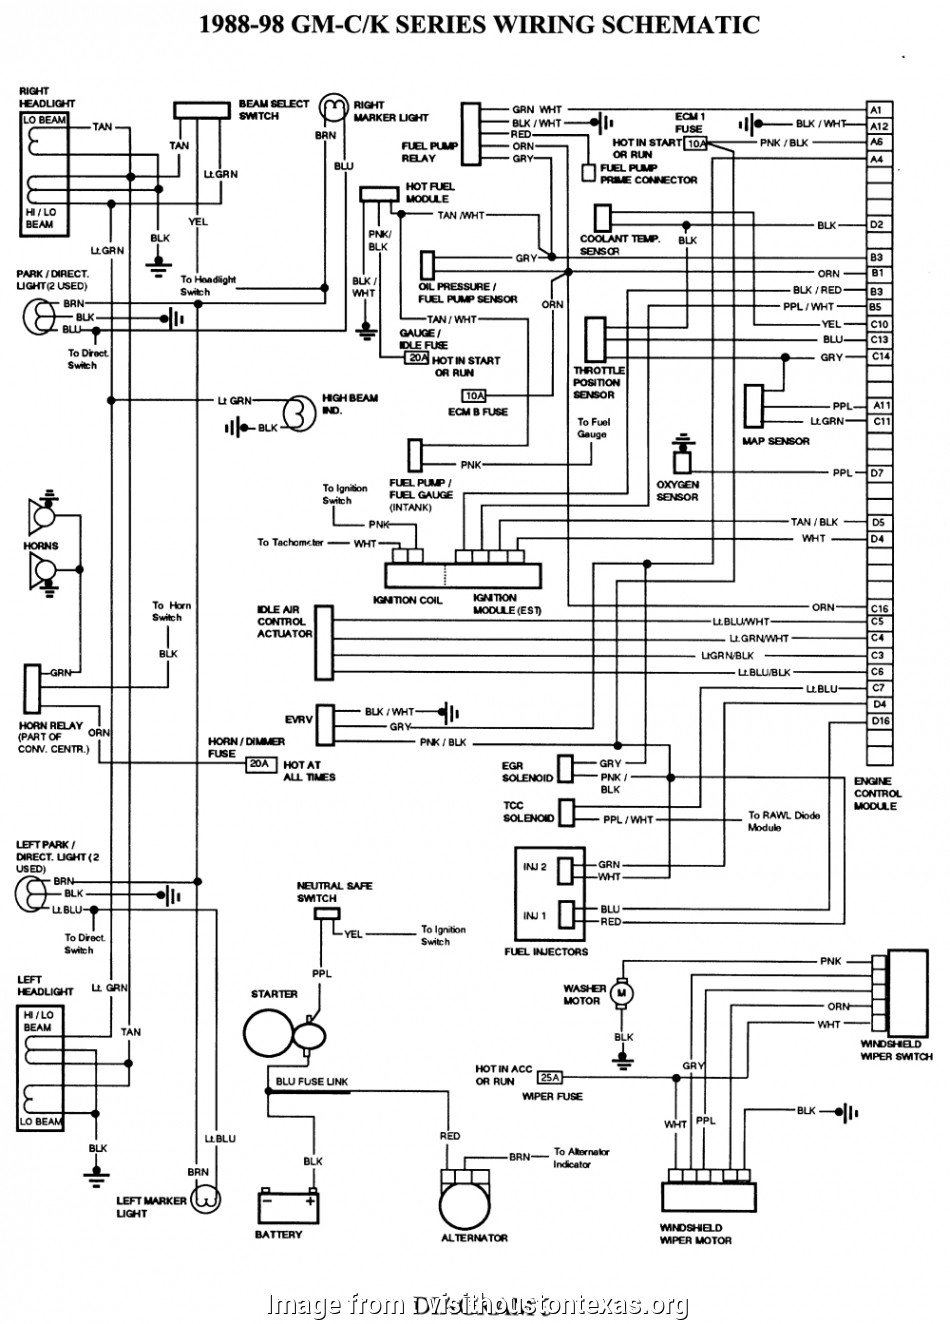 Toggle Switch Turn Signal Wiring Diagram New Turn Signal Wiring Diagram Chevy Truck Download